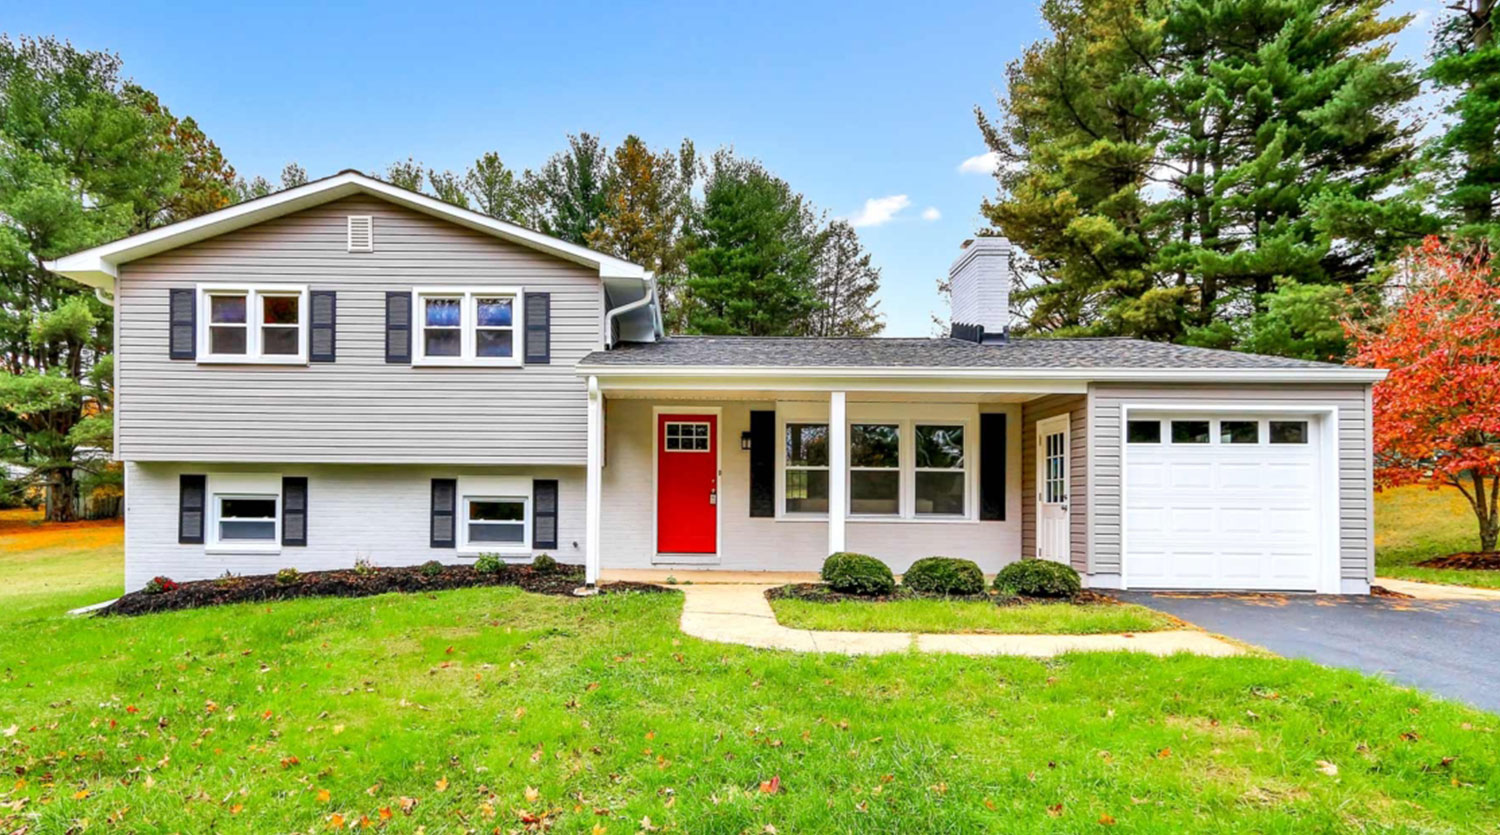 Buy a Newly Renovated House in Baltimore